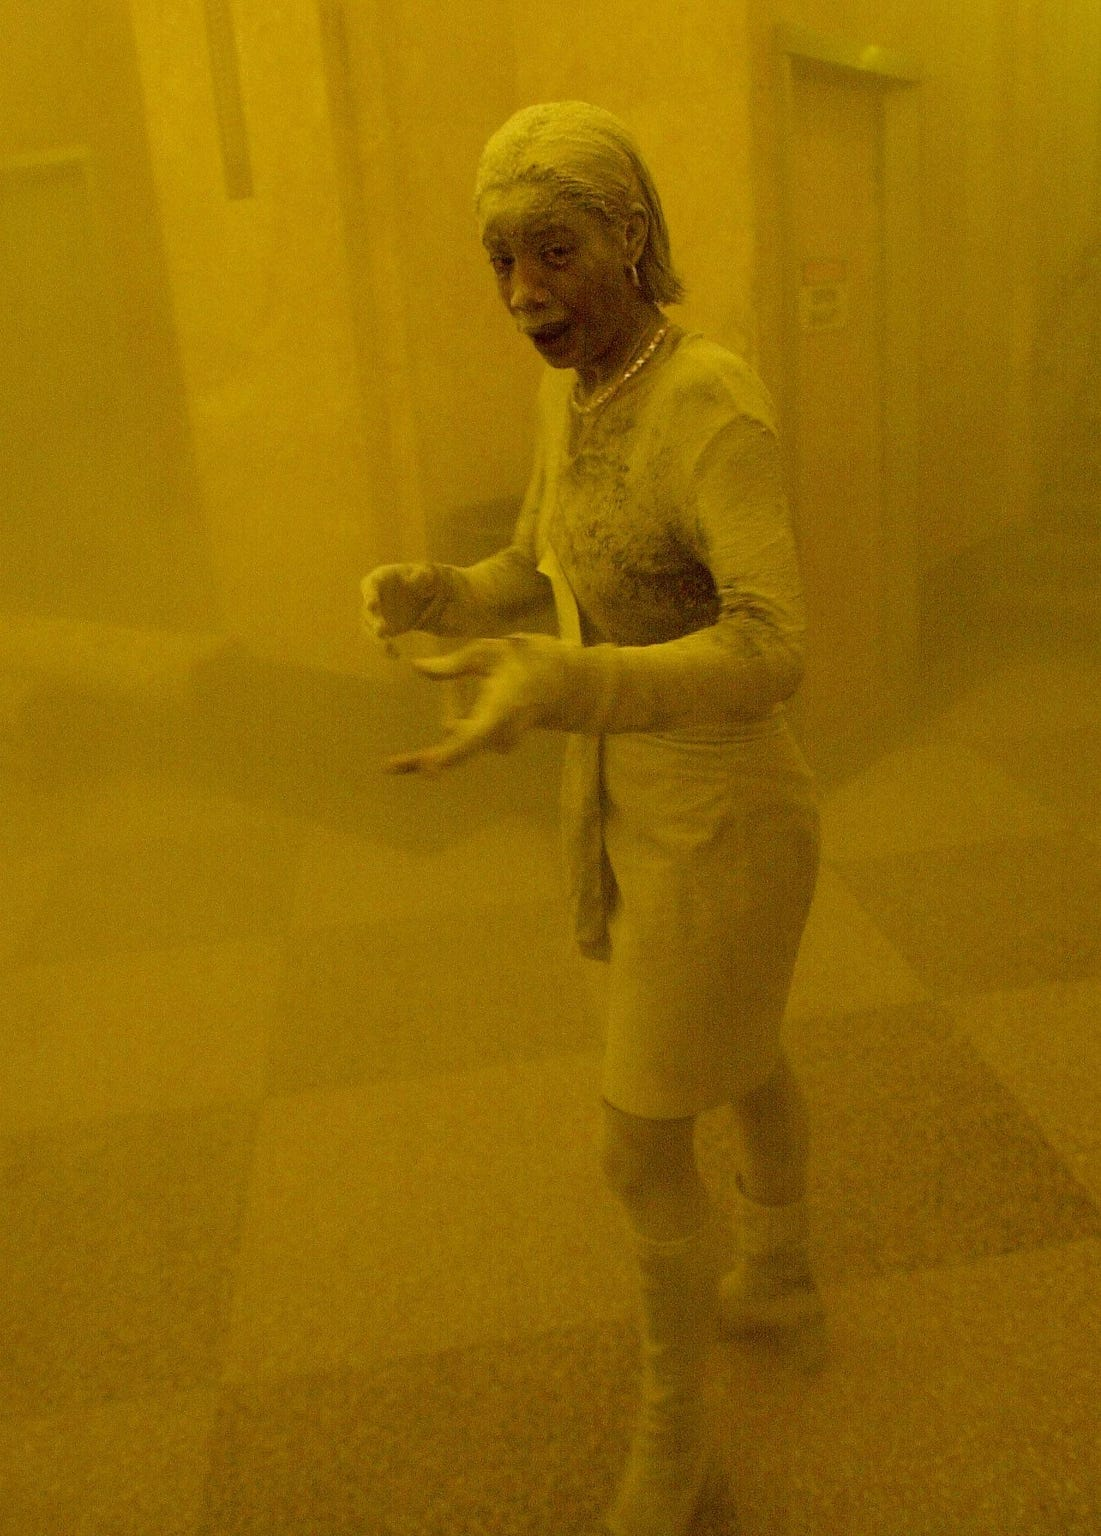 Marcy Borders is covered in dust as she takes refuge in an office building after one of the World Trade Center towers collapsed in New York.